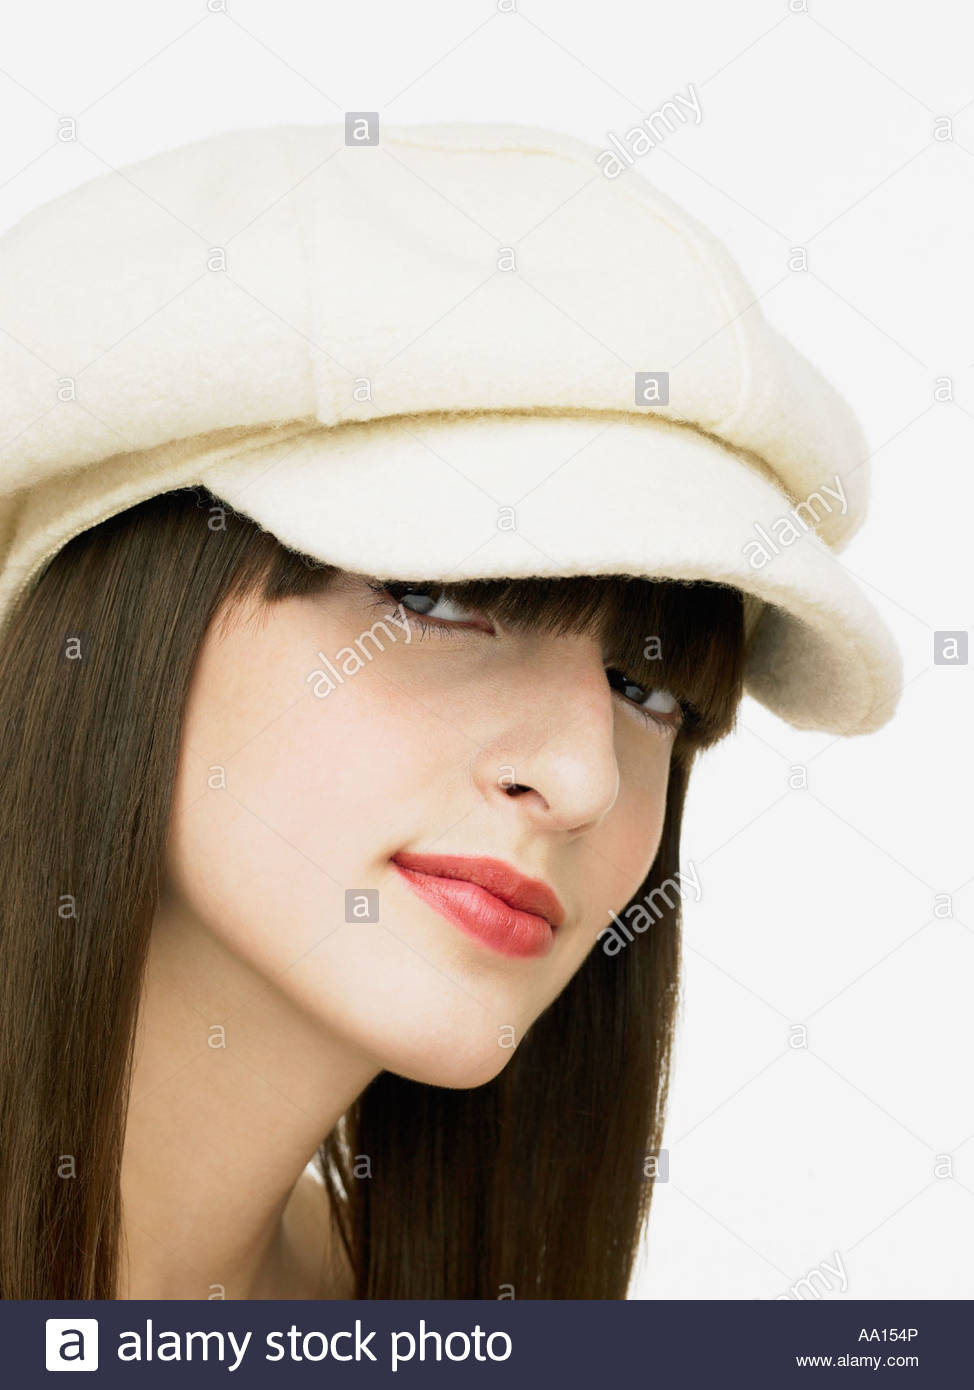 9791a944587e8 Young woman wearing a hat Stock Photo  12479877 - Alamy